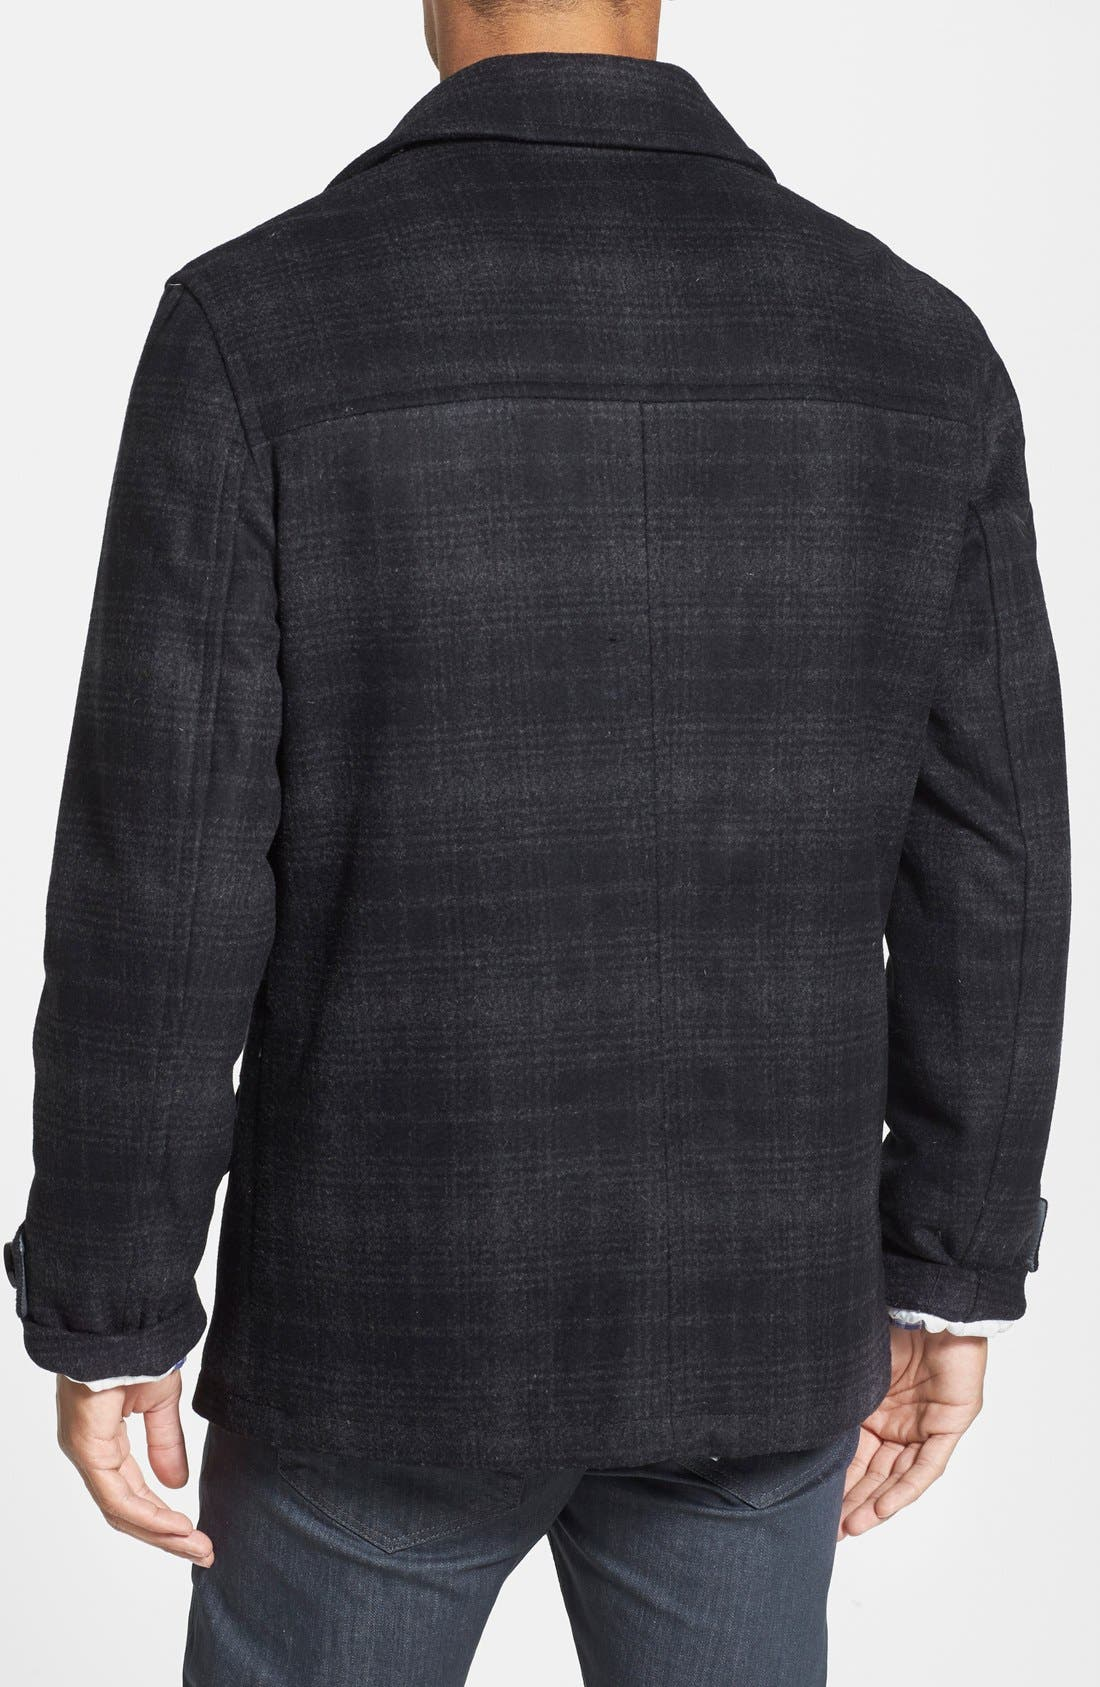 'Fettes' Regular Fit Double Breasted Check Wool Blend Peacoat,                             Alternate thumbnail 2, color,                             001